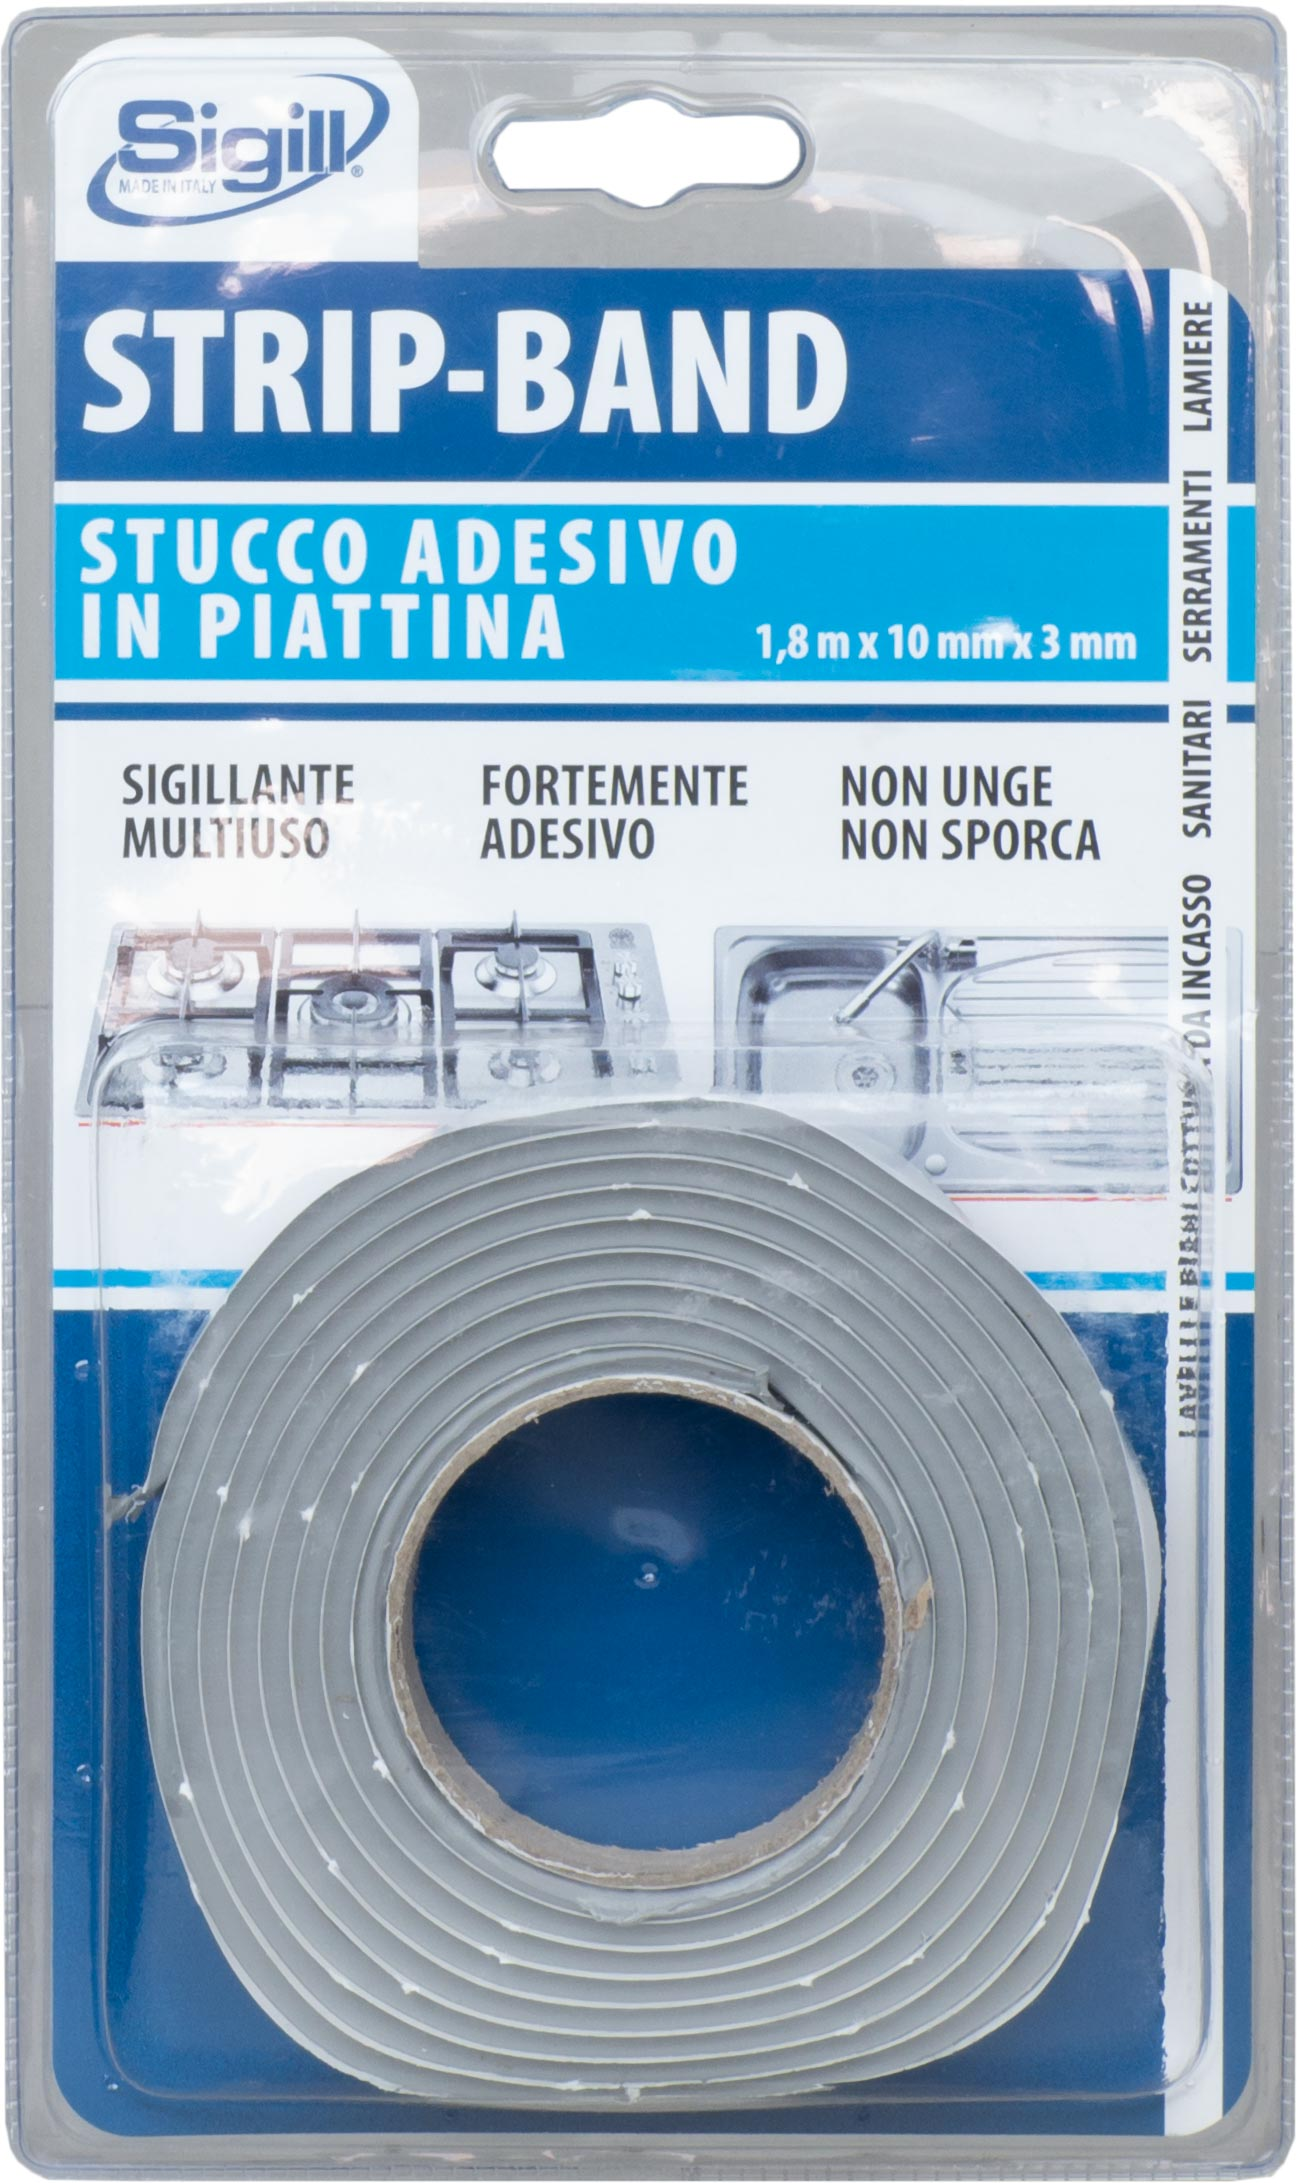 Stucco Per Piano Cottura strip band | blister | sigill